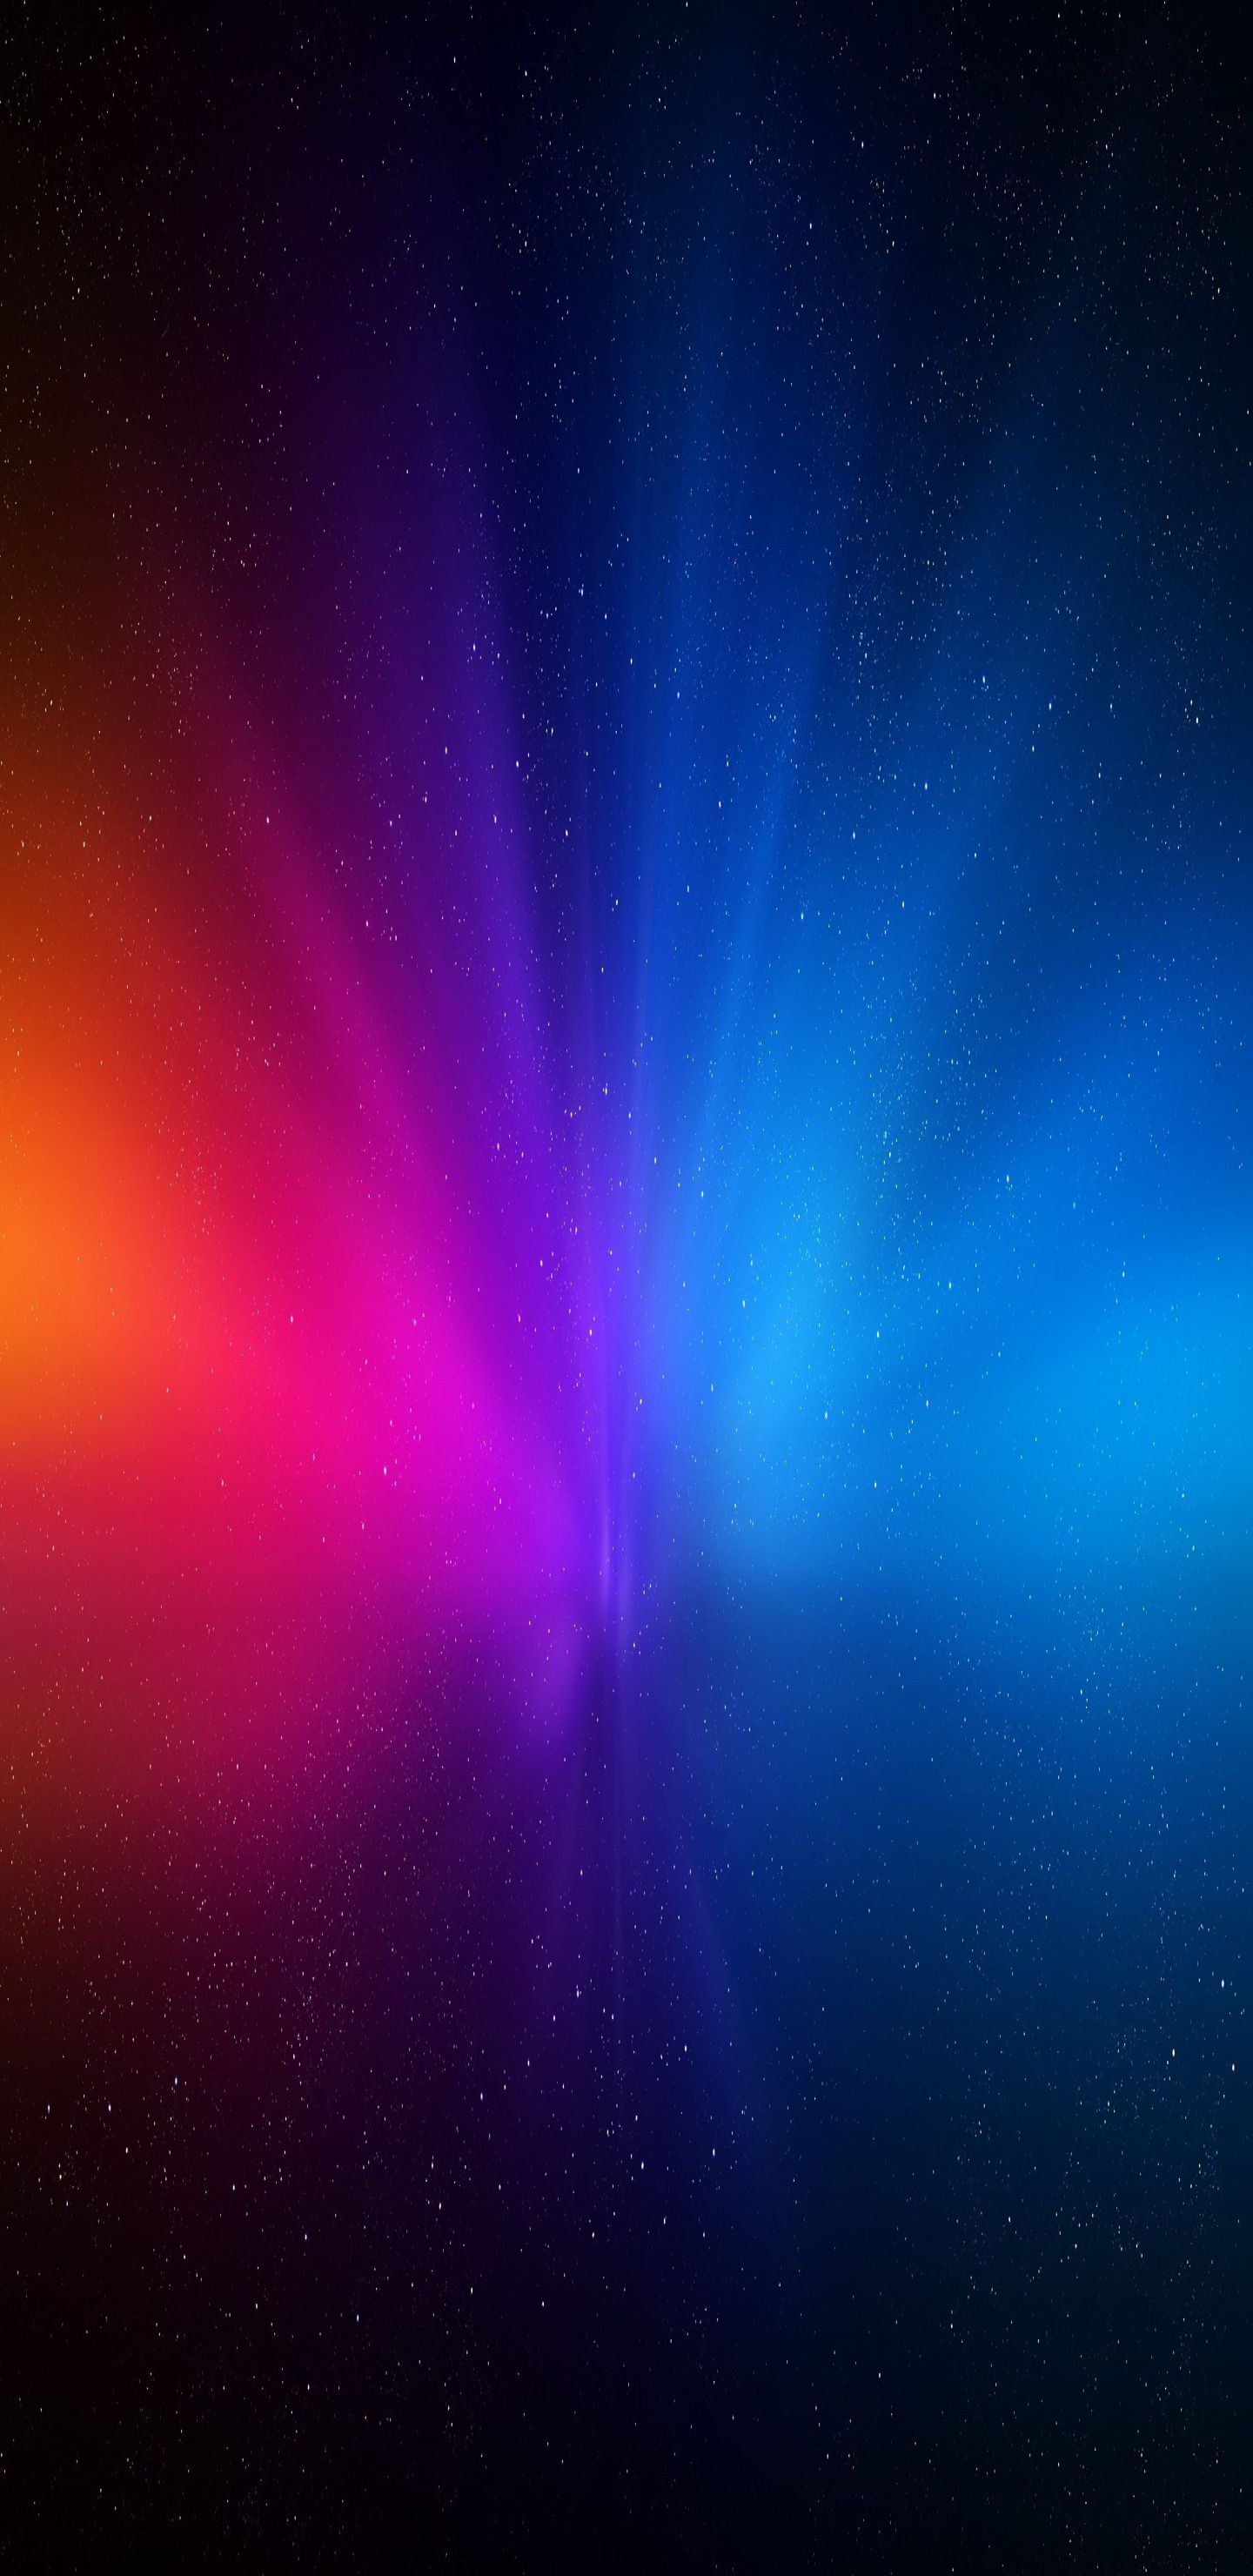 blue, red, purple, space, minimal, abstract, wallpaper, galaxy